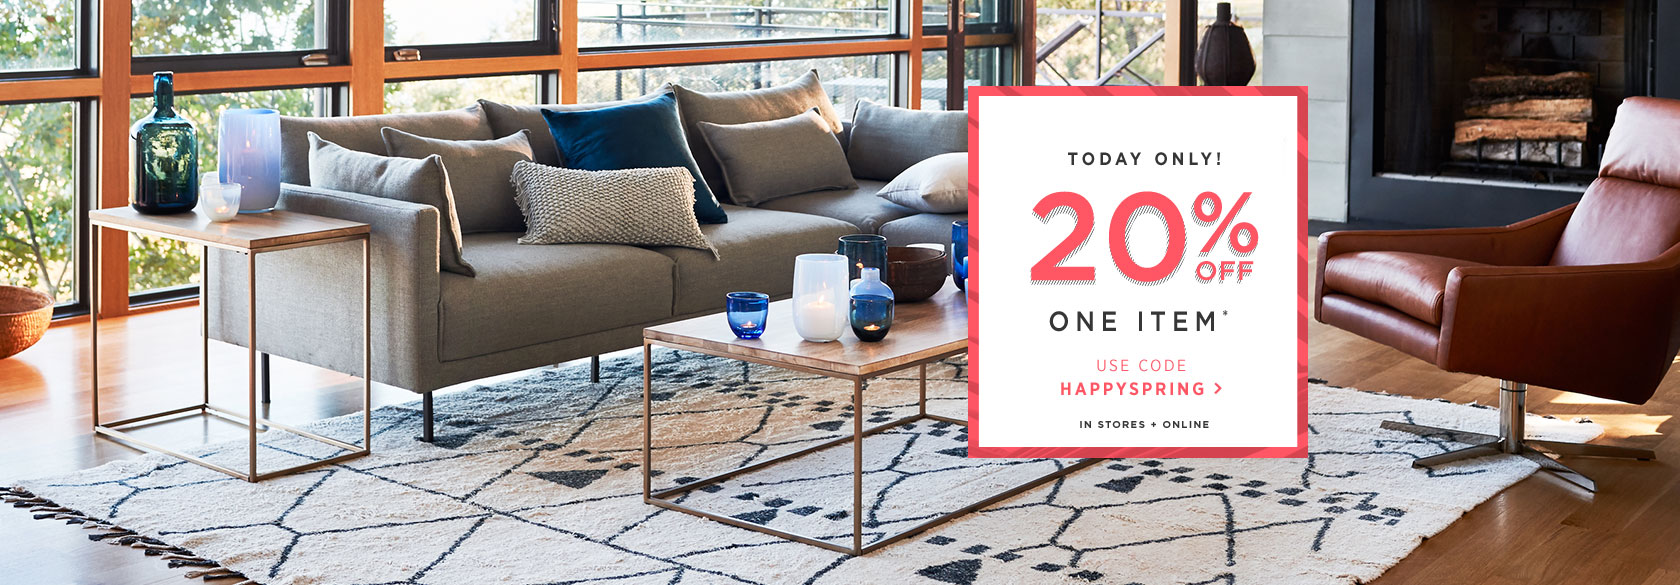 Today Only! 20% Off One Item With Code HAPPYSPRING